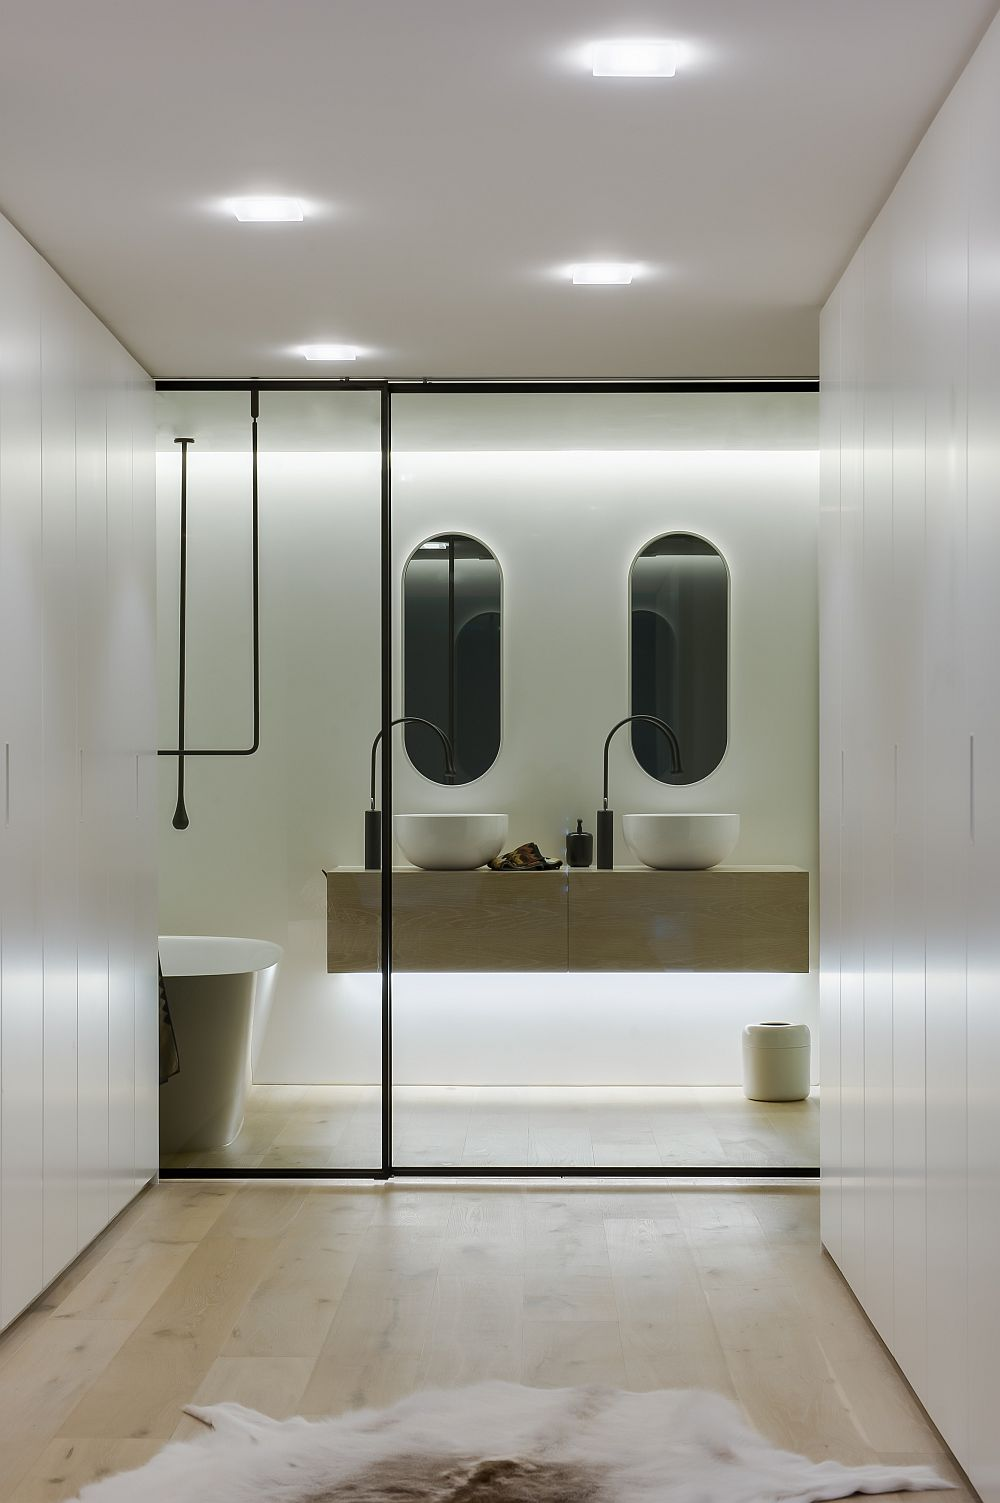 Bathroom with glass doors closed